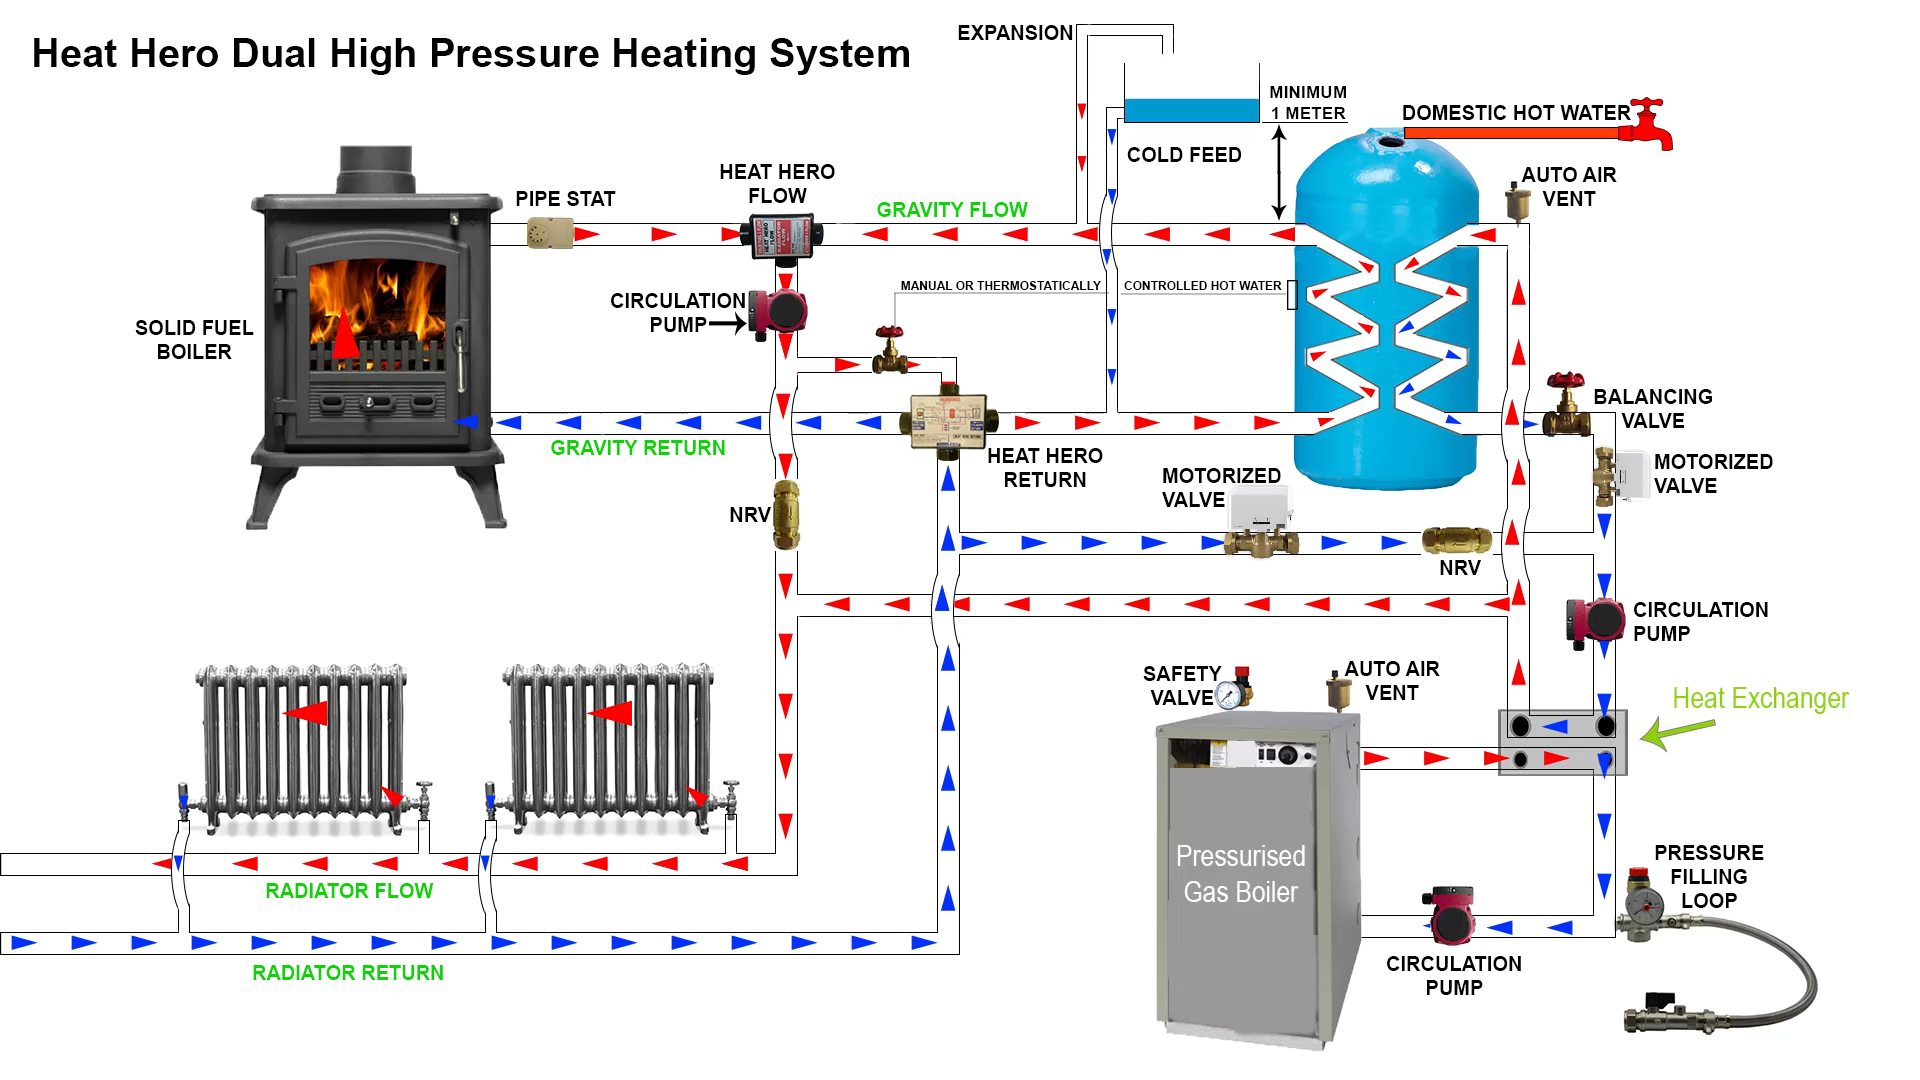 Heat Hero Gravity Dual High Pressure Heating System - heathero.ie